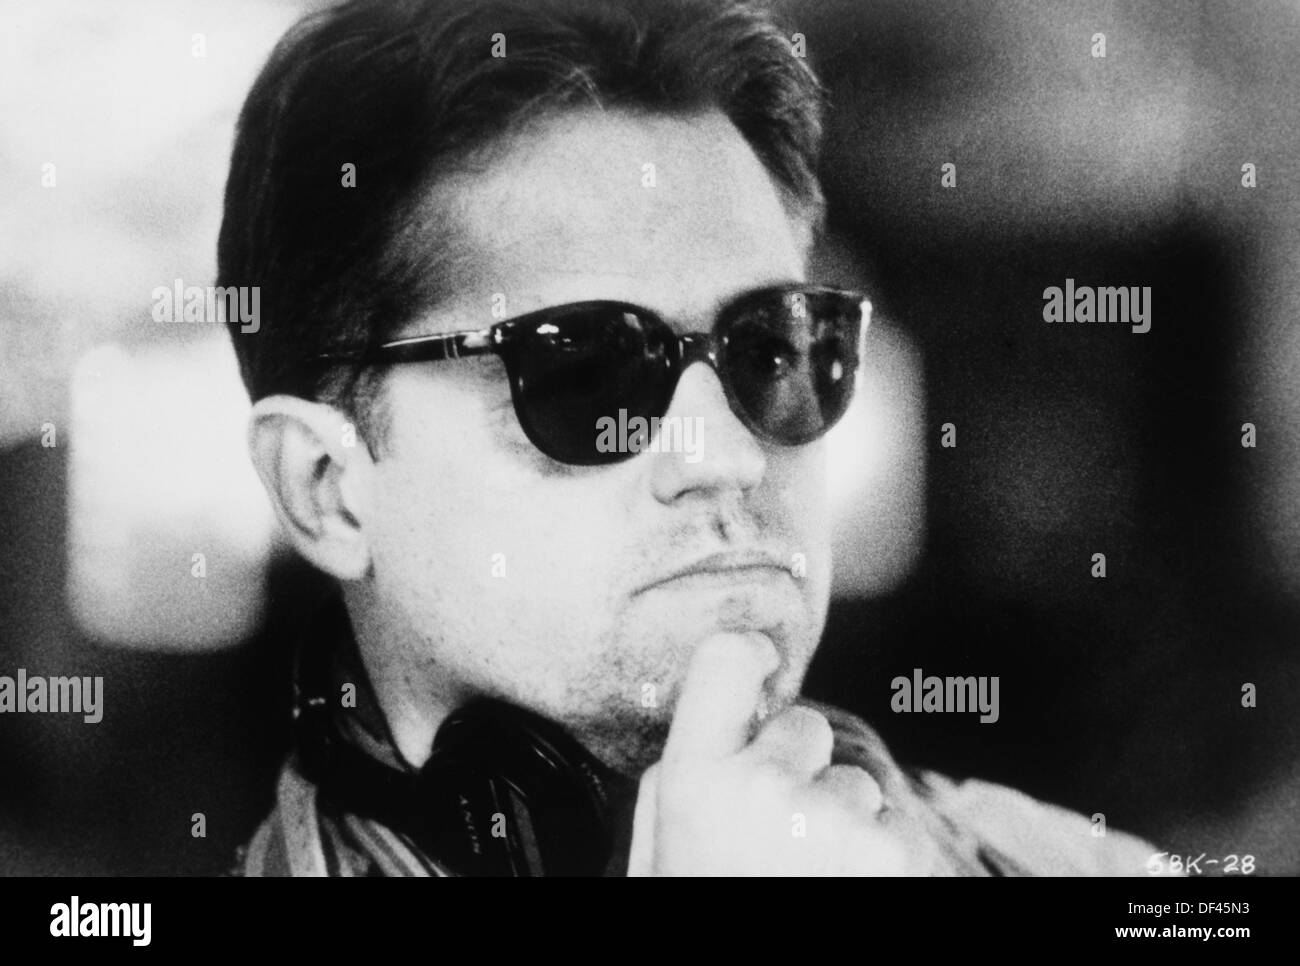 Jonathan Demme, Film Director, Portrait, 1988 - Stock Image